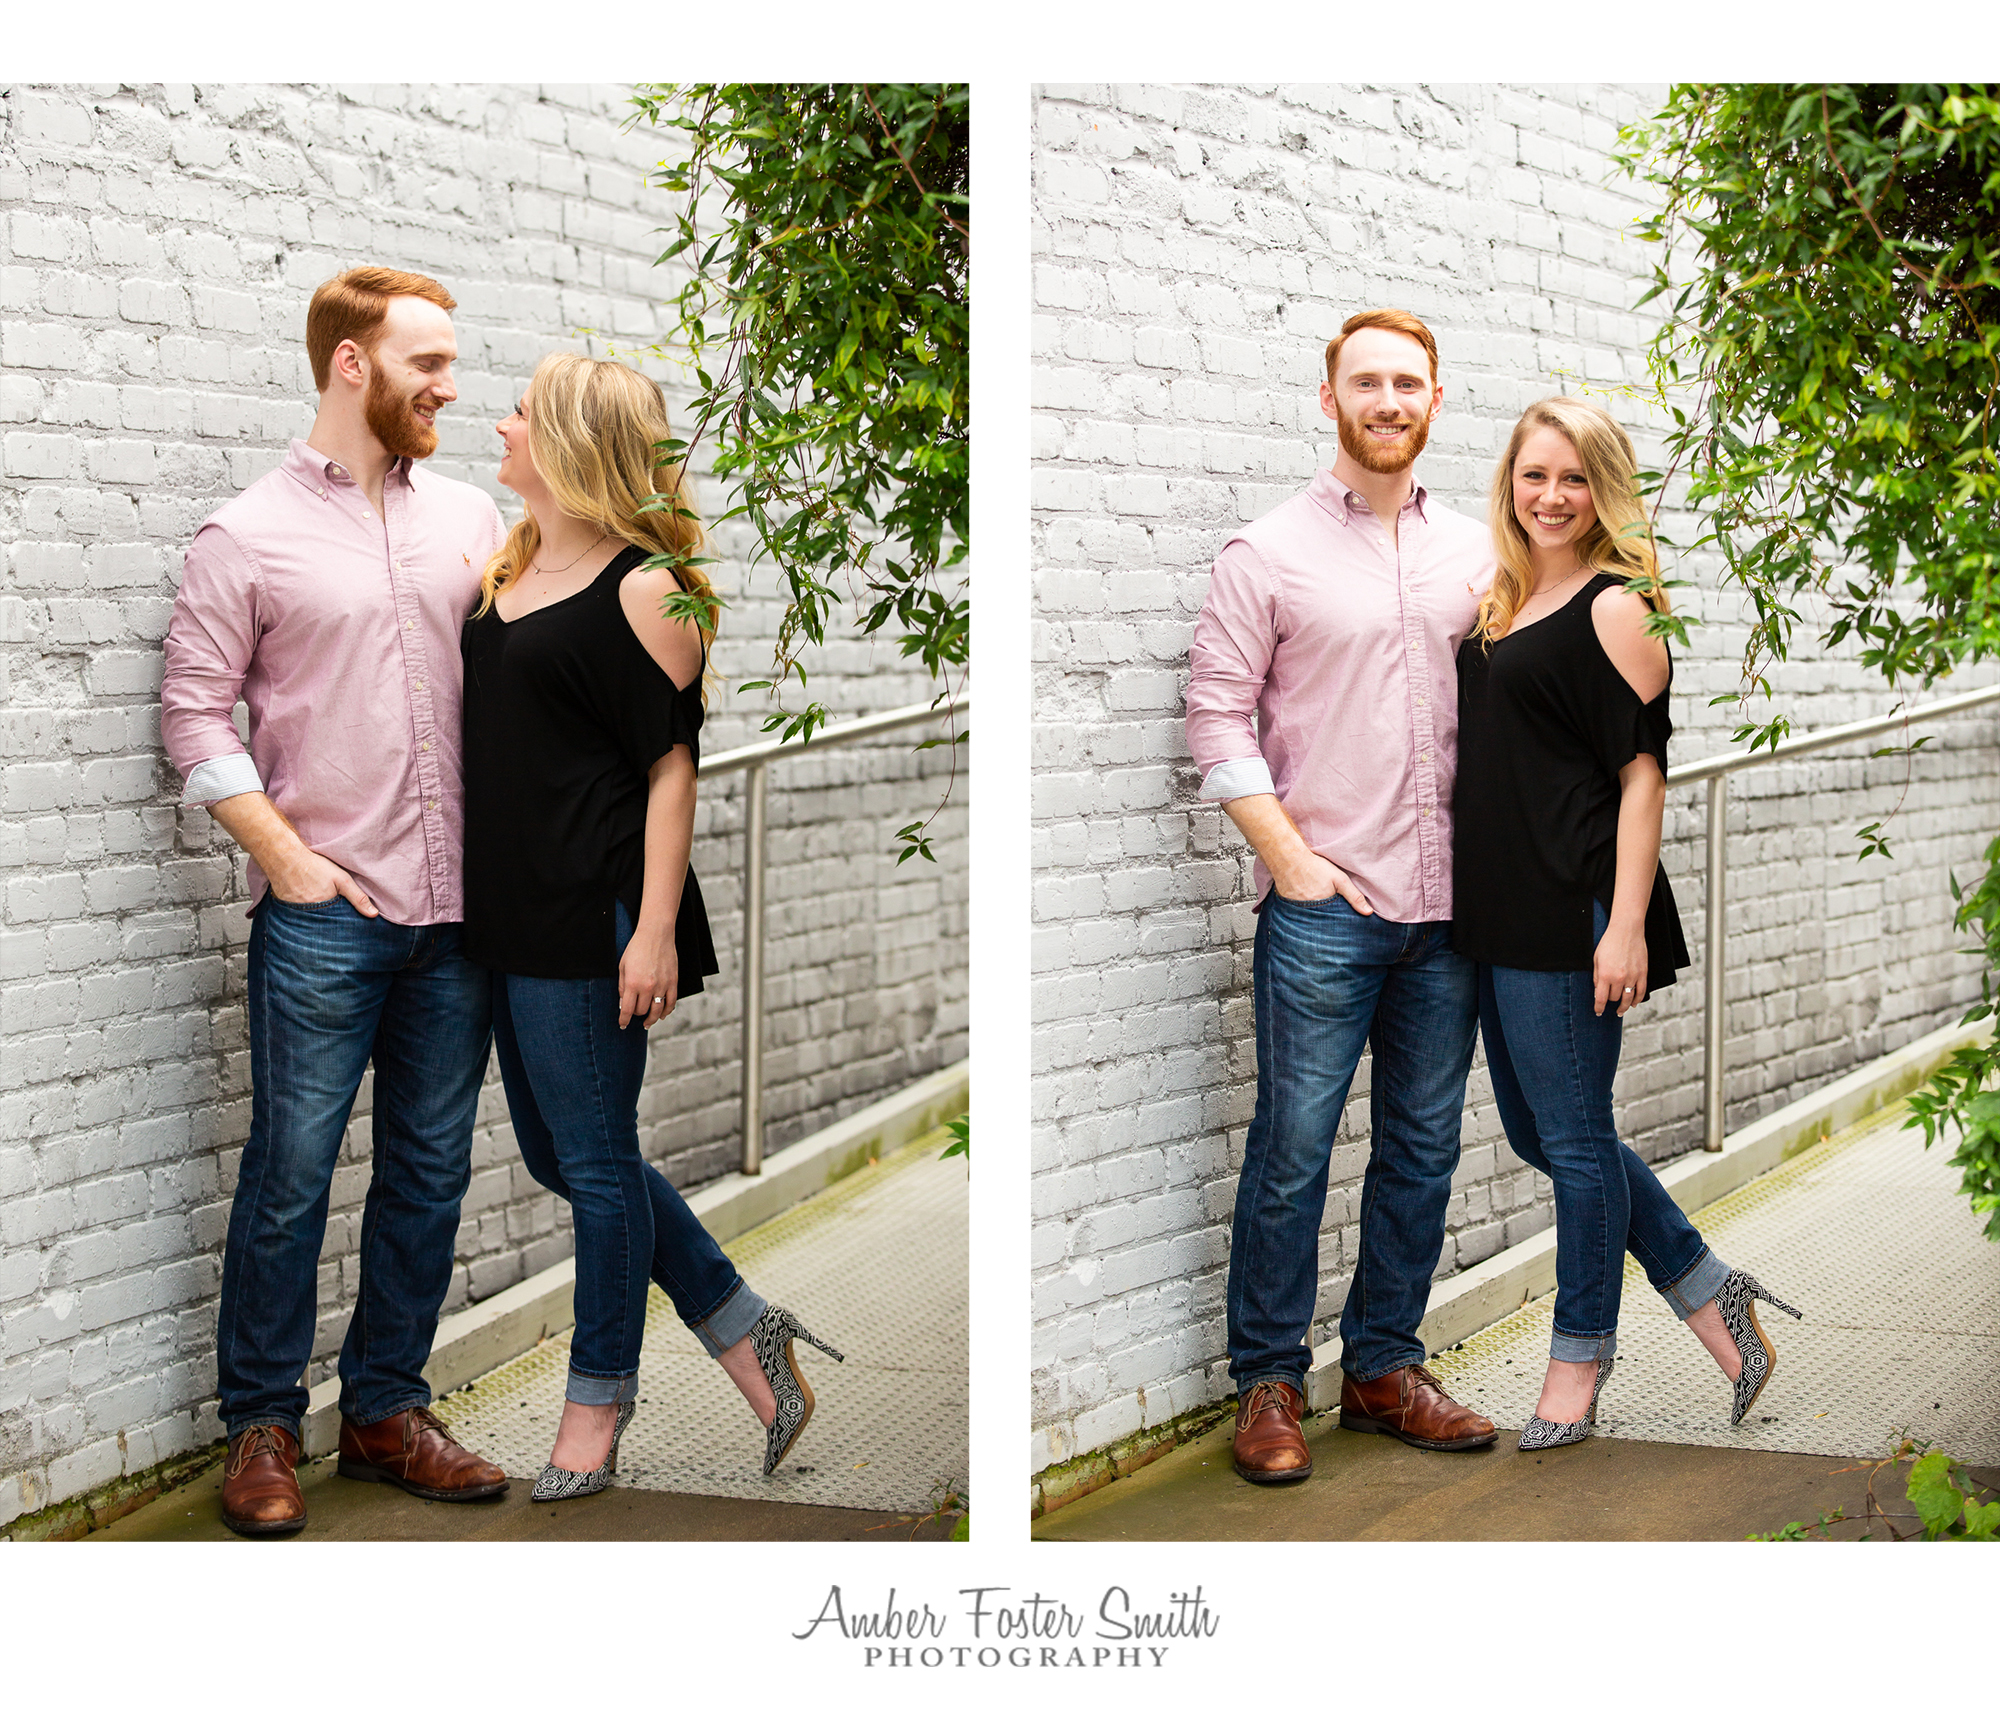 Amber Foster Smith Photography - Holly Springs, NC | Raleigh Wedding and Engagement Photographer